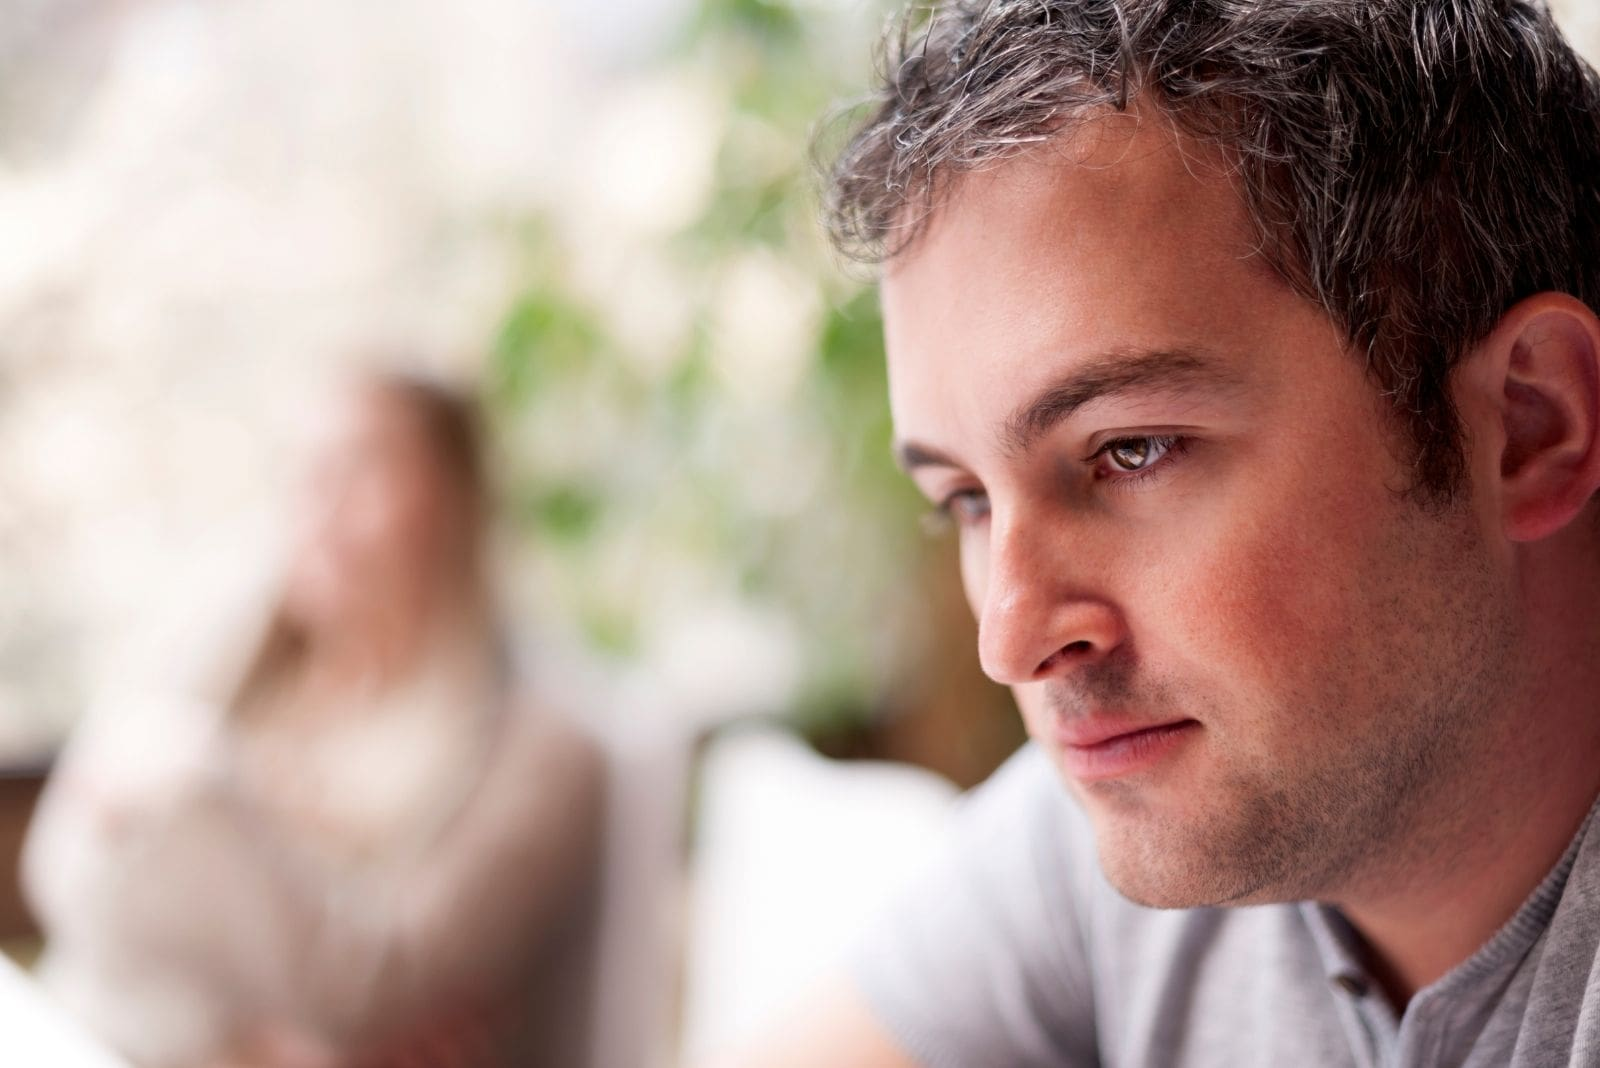 young pensive man focus on his face with blurry image of a woman apart from him